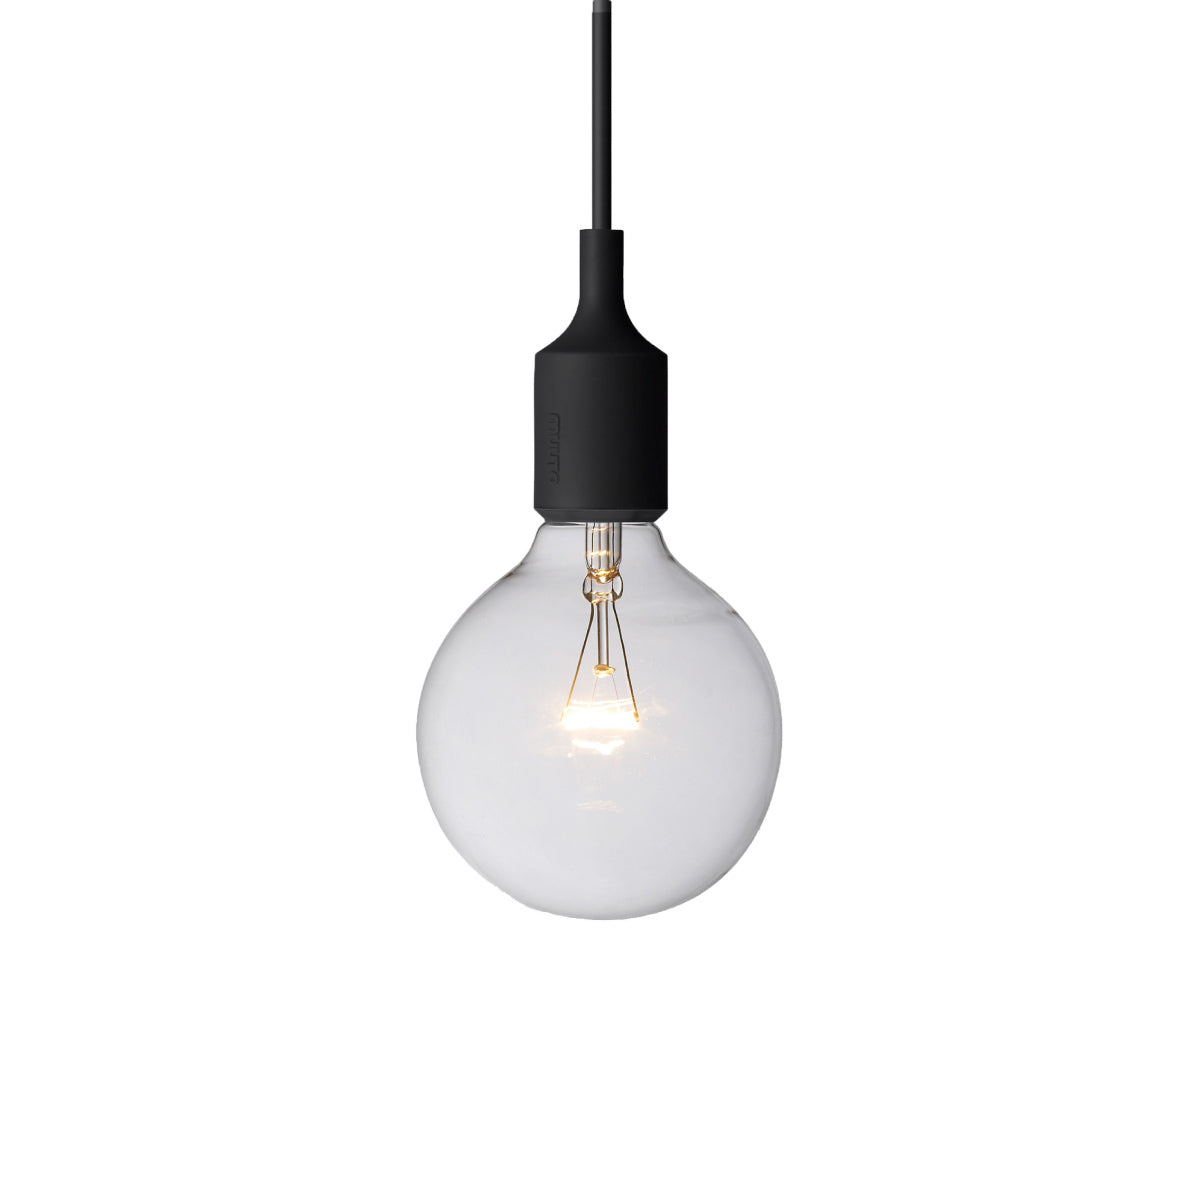 E27 Silicone Light: Black